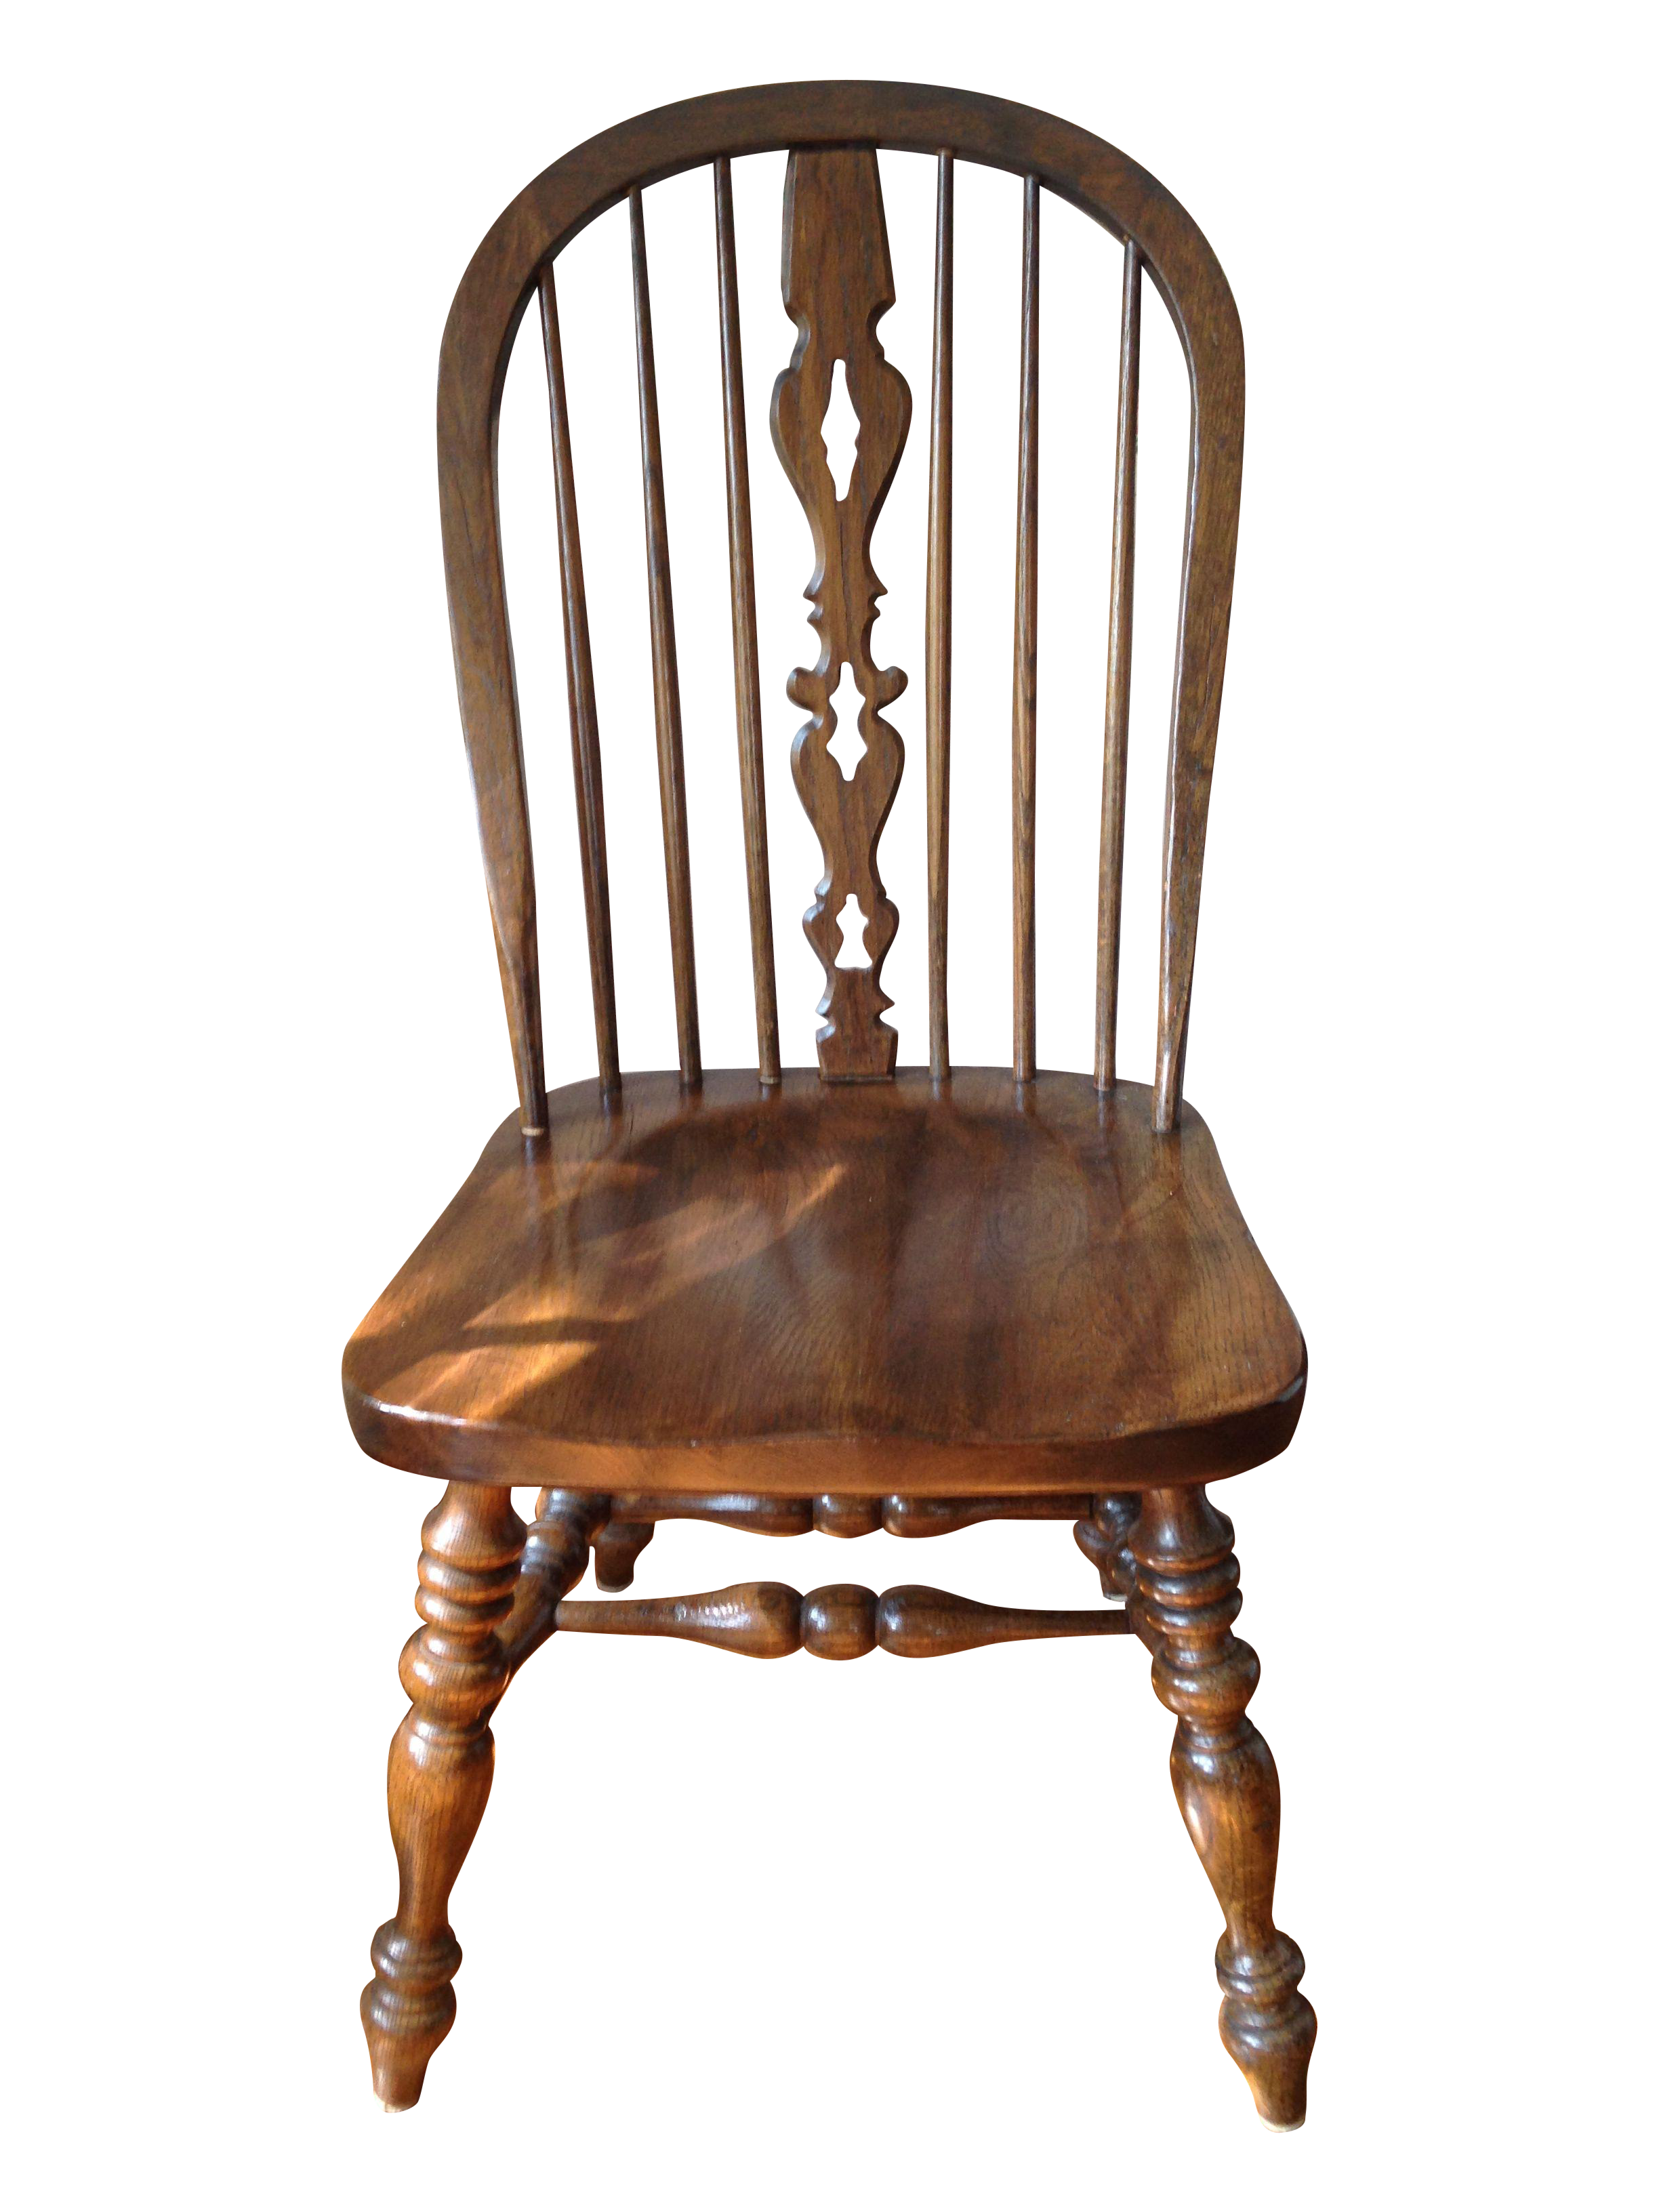 Antique Dining Chairs Value Upholstered Swivel Rocker Set Of 4 Vintage Ethan Allen This Includes